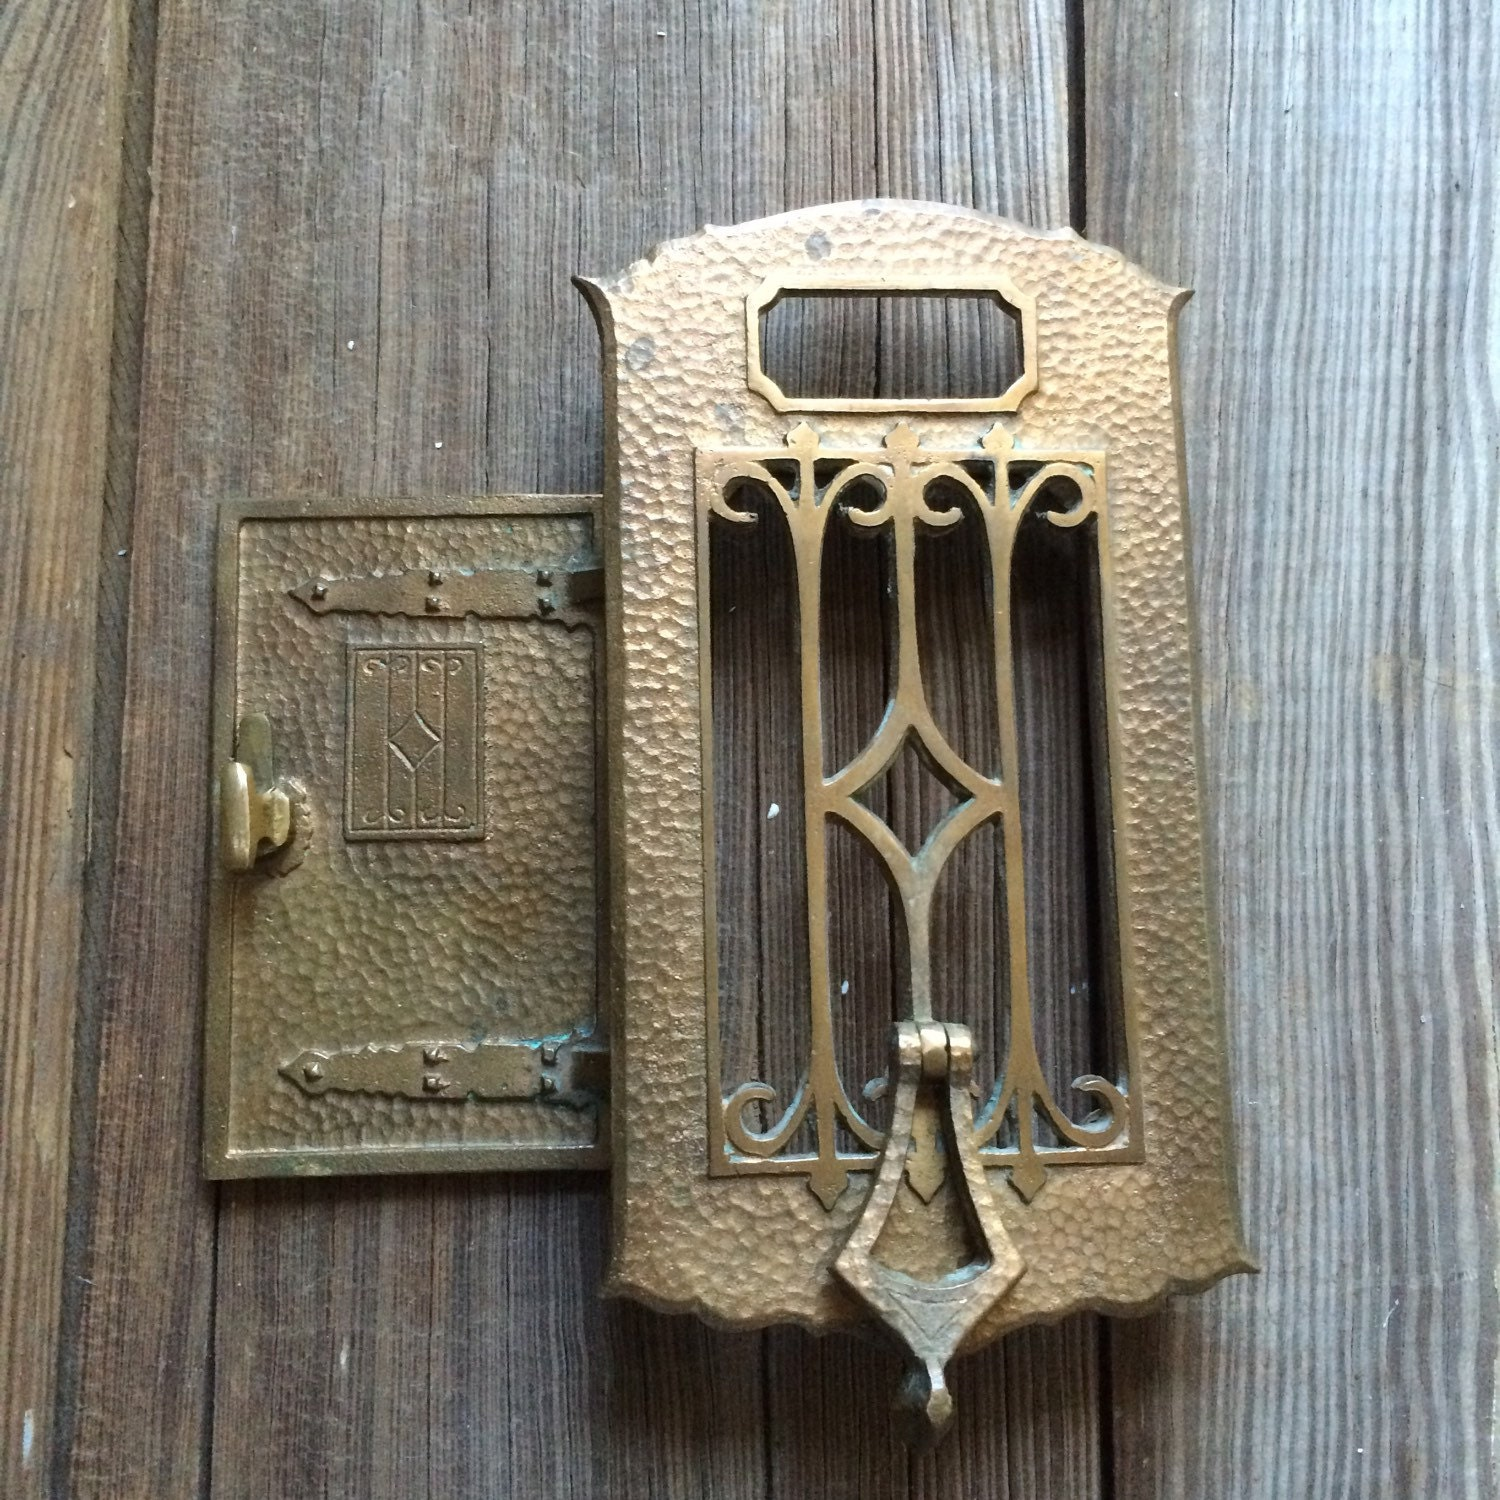 Antique door peepholes a peephole in this antique door is surrounded by a wrought iron grill - Antique peephole ...